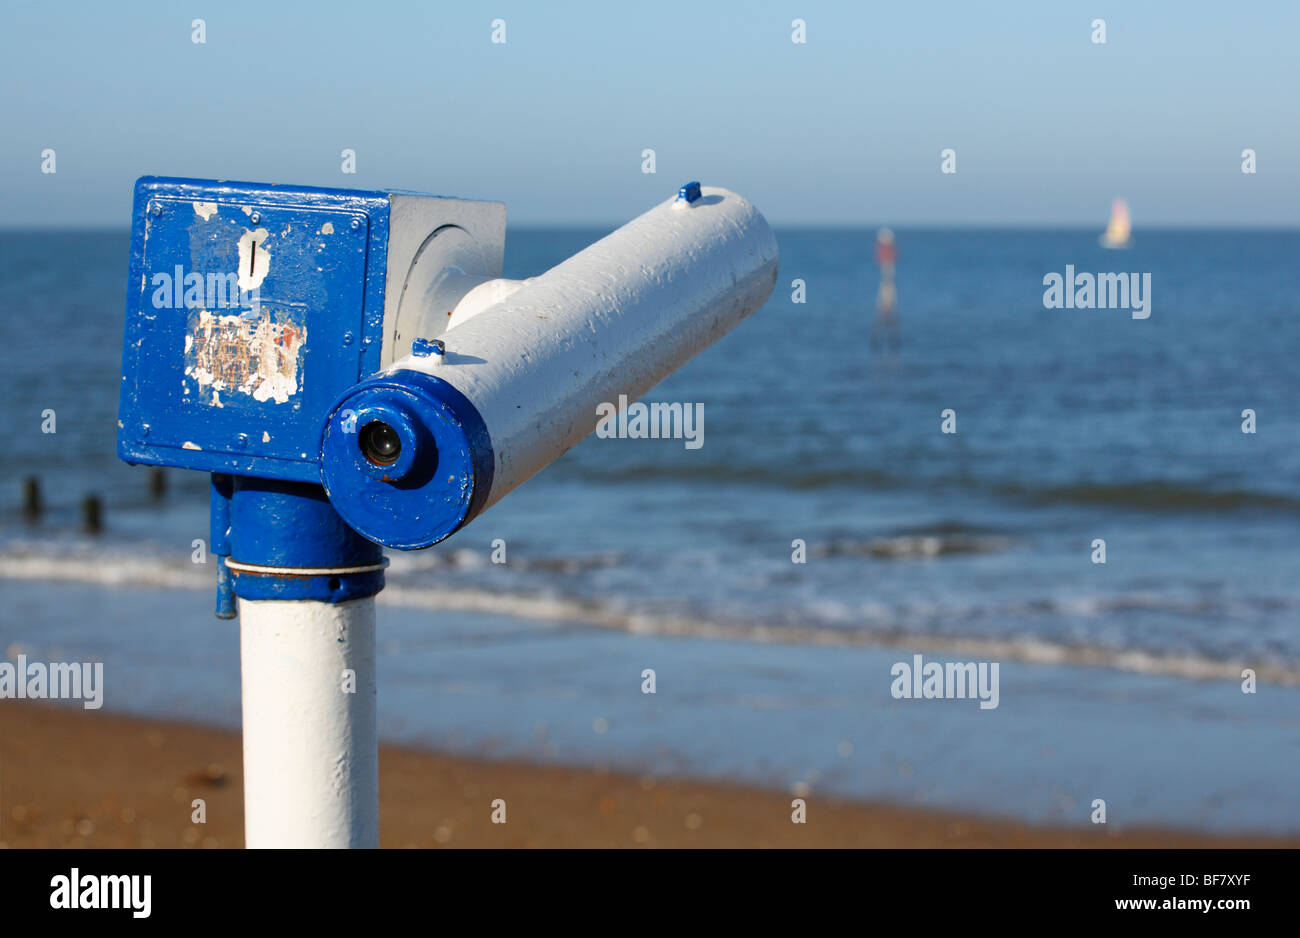 A seaside telescope looking over the sea with a distant sail visible. - Stock Image